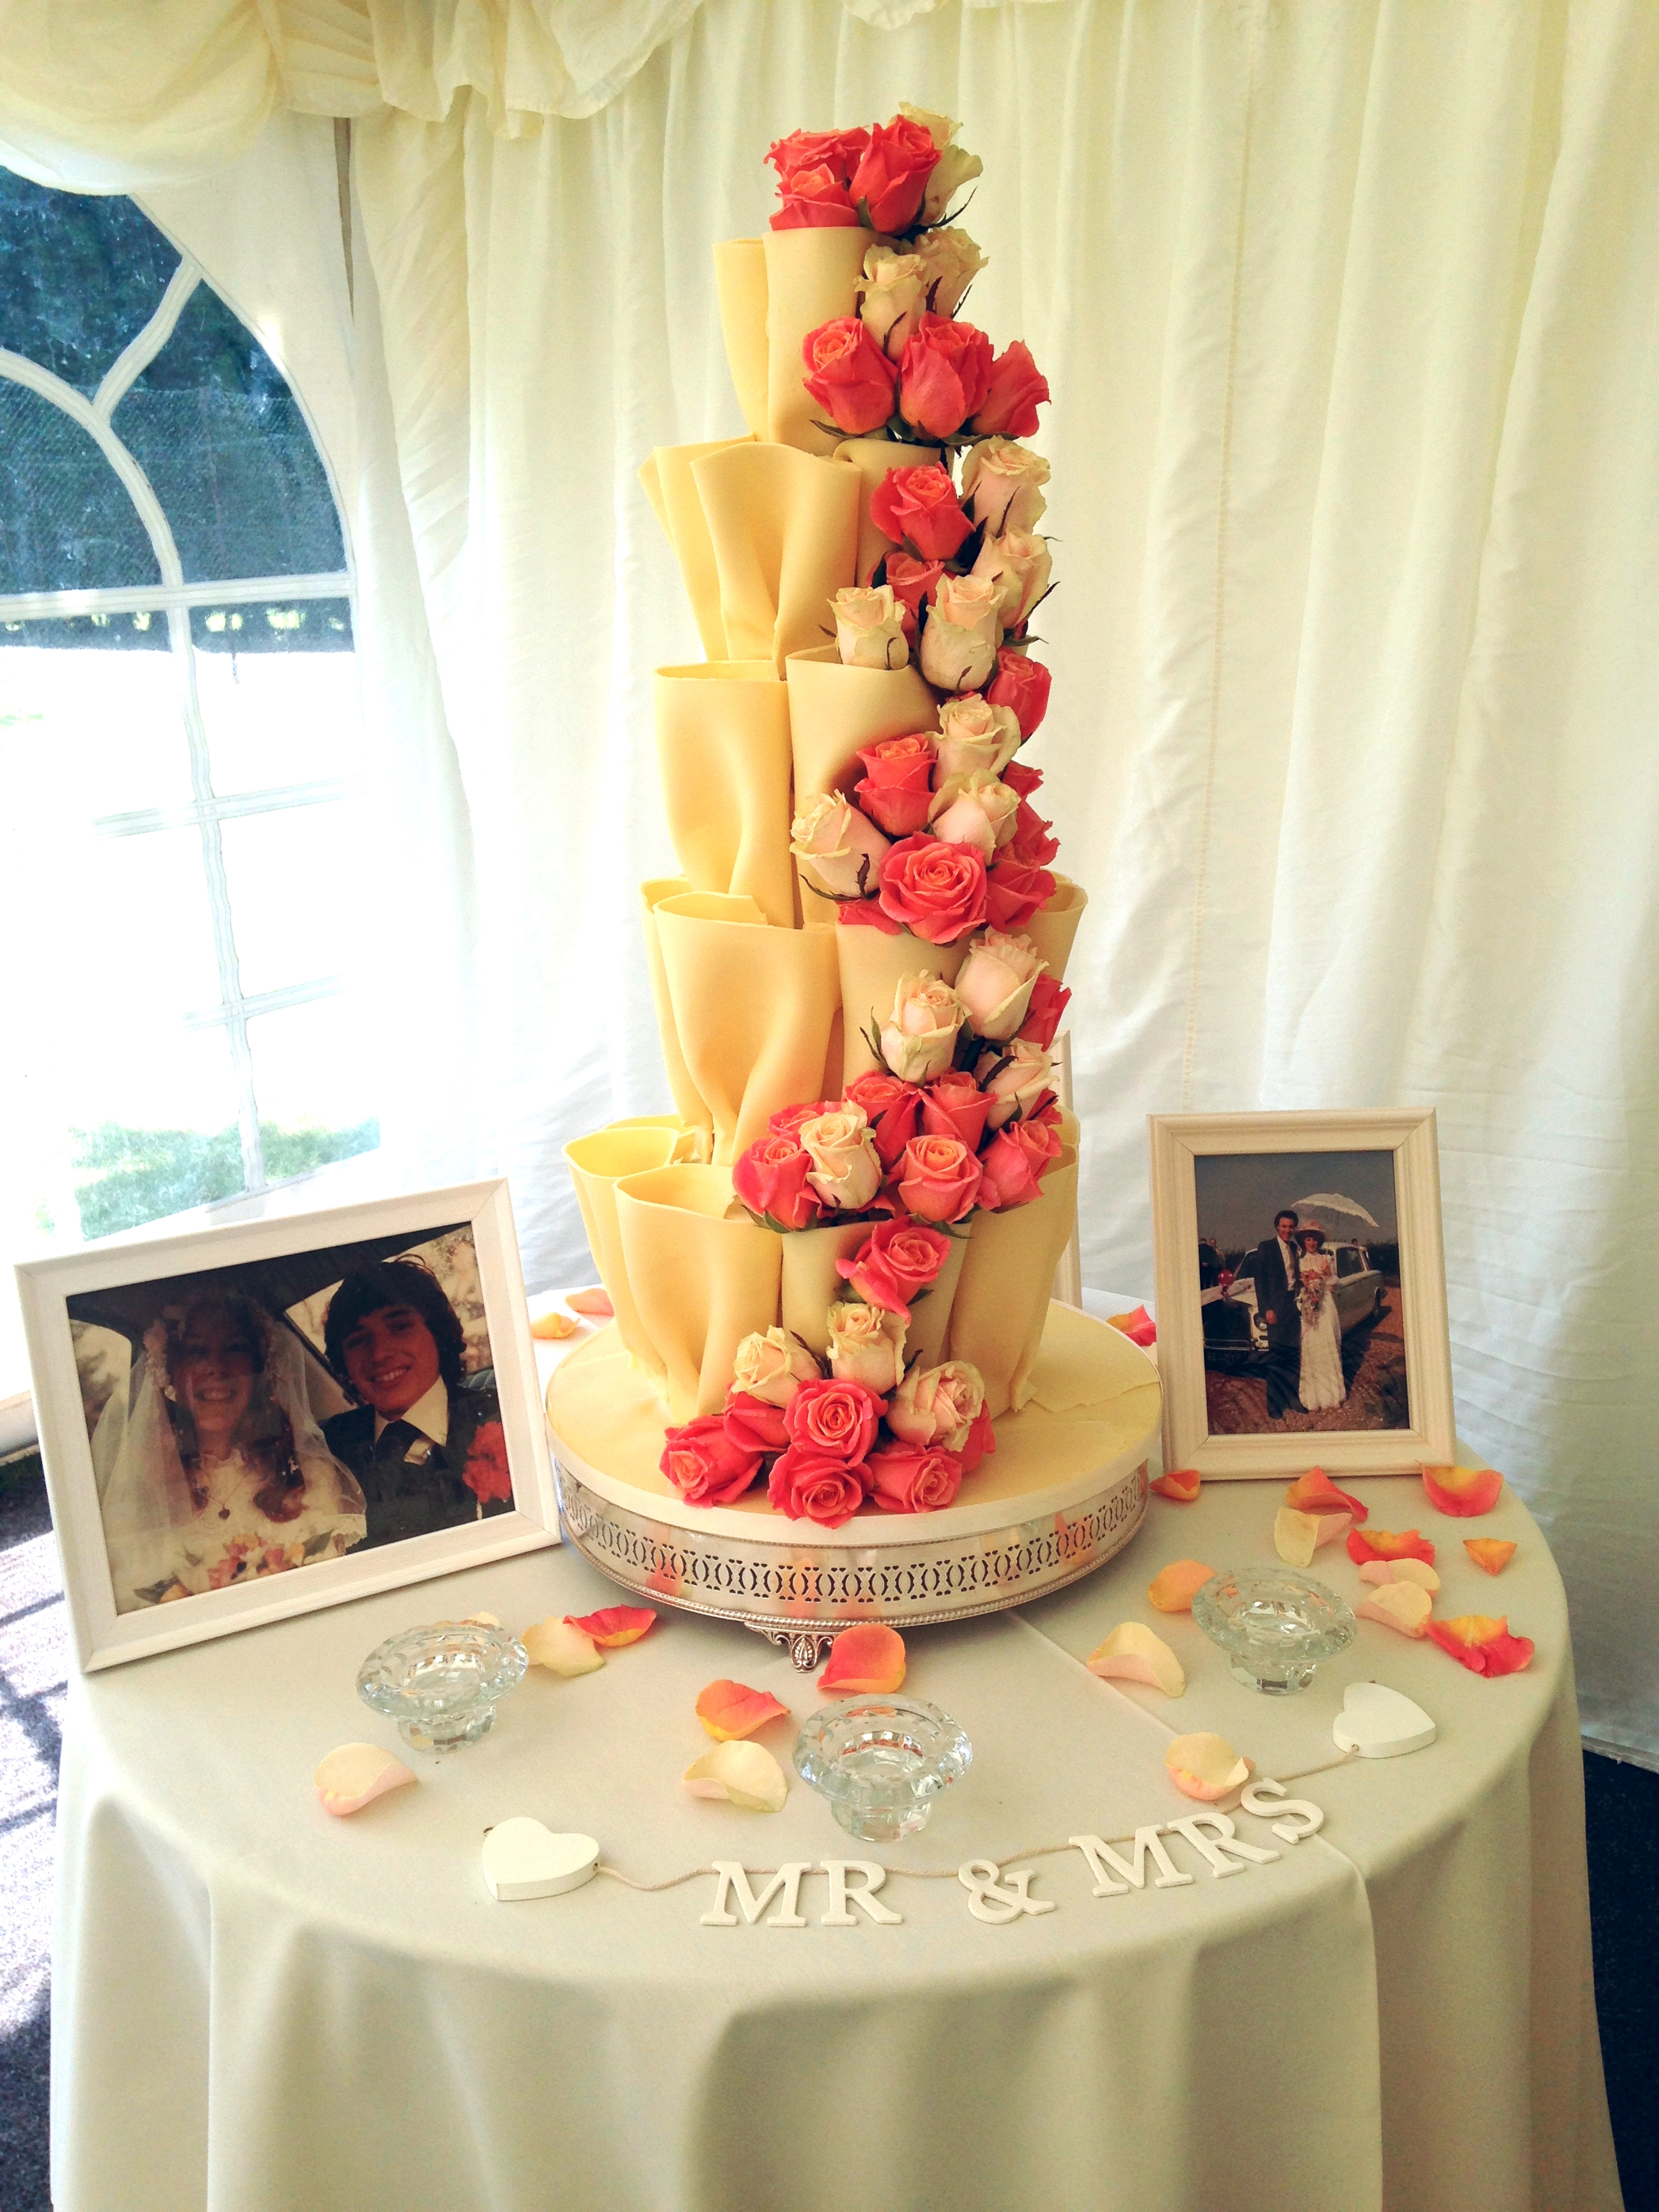 The AMAZING white chocolate wedding cake! Weddings, Fryerning Essex